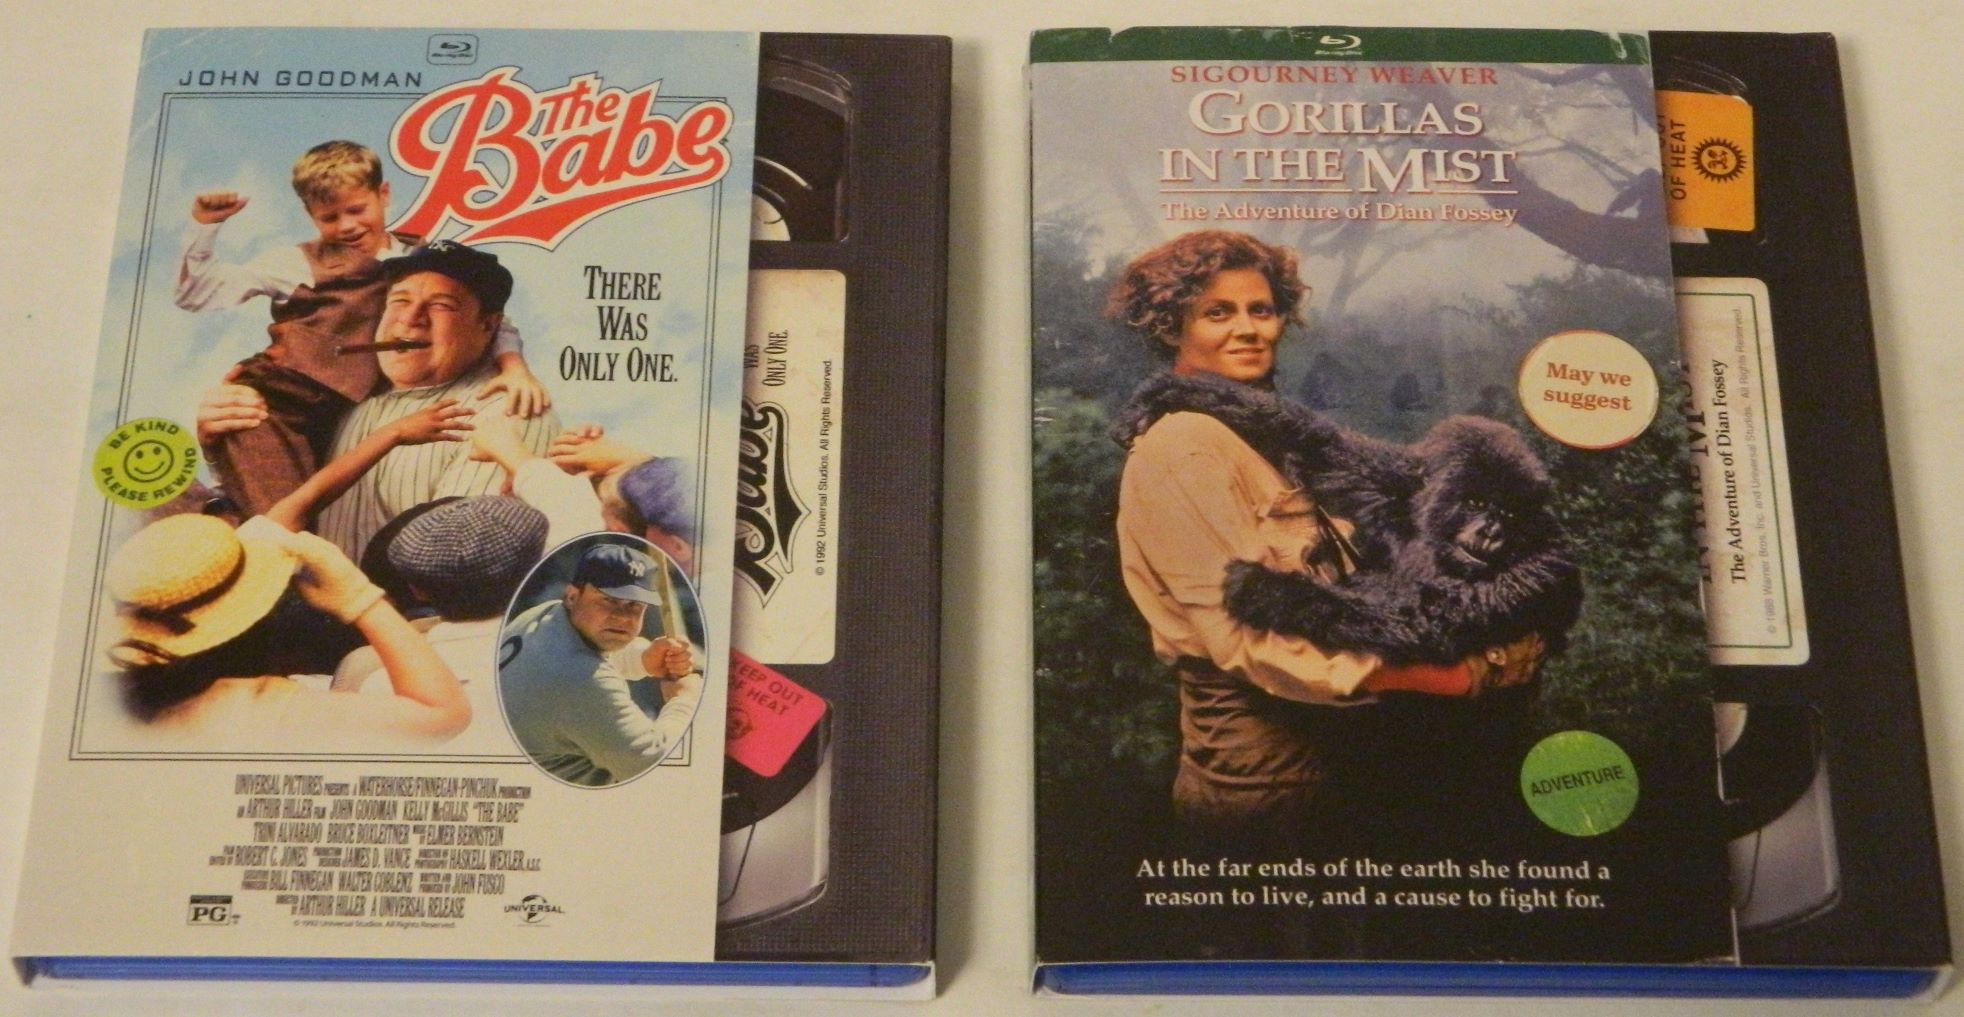 The Babe and Gorillas in the Mist Blu-rays